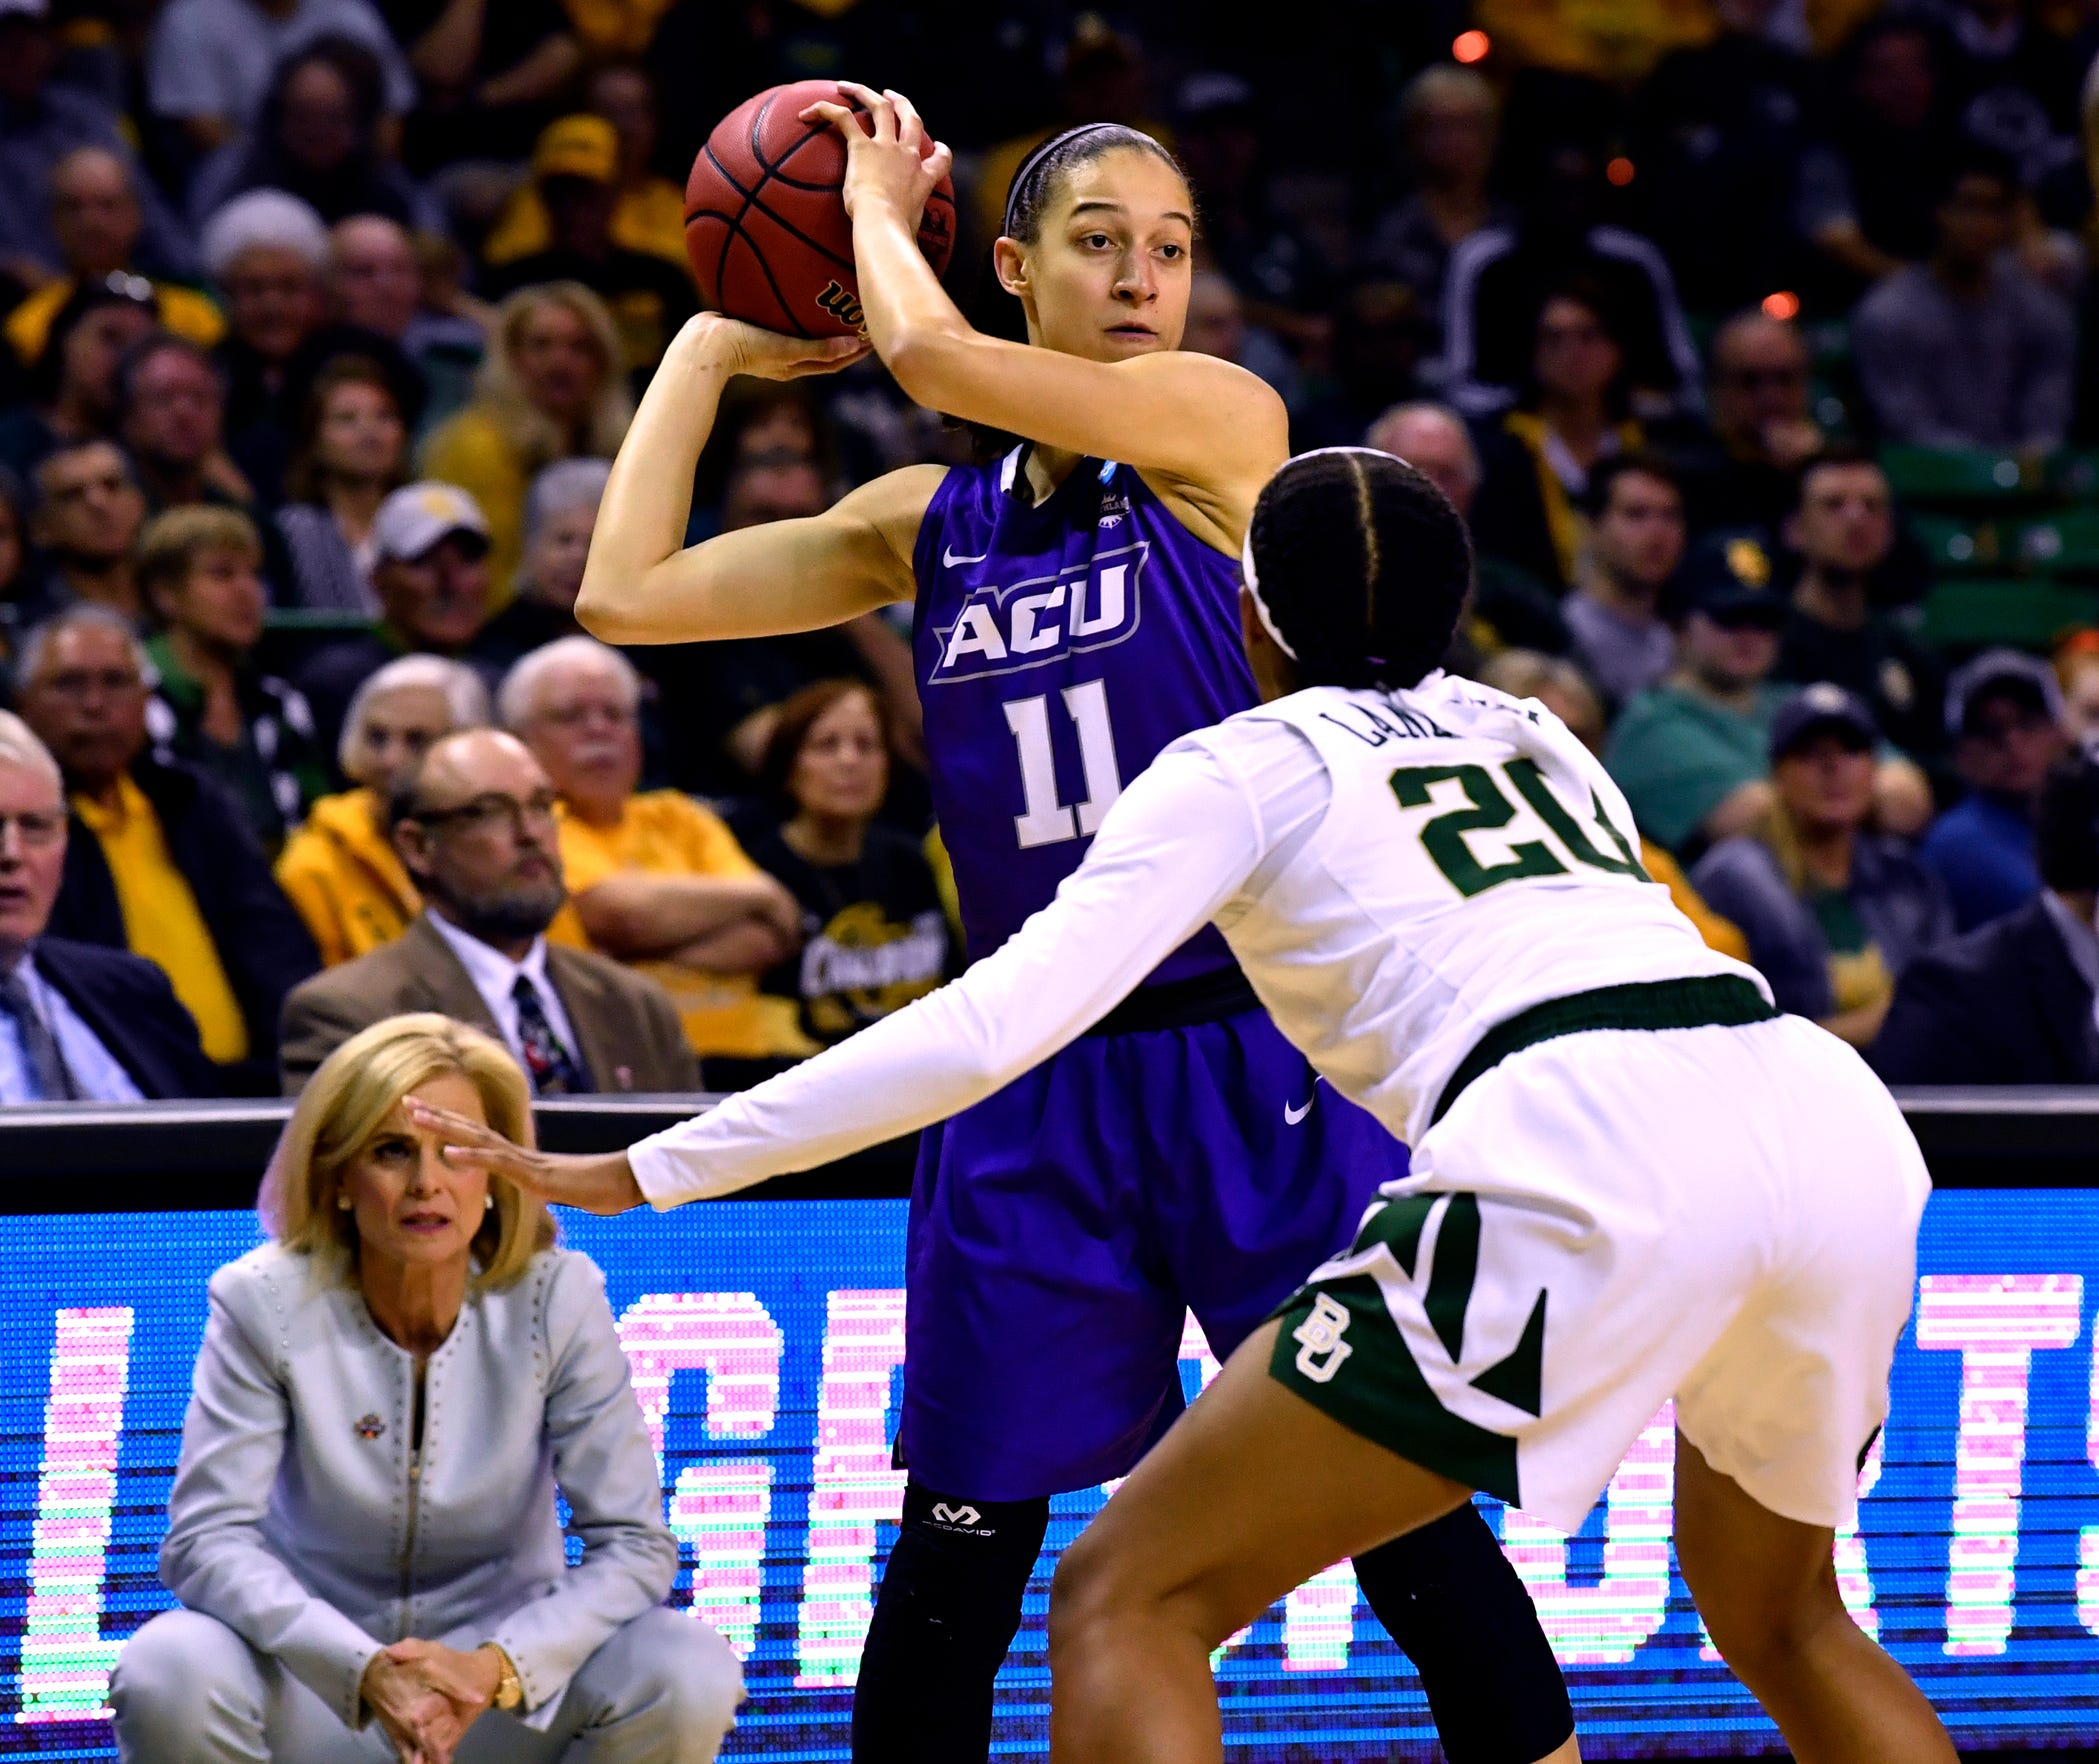 ACU's Sara Williamson looks for an opening past Baylor's Juicy Landrum during the first round of the NCAA Tournament. The Wildcats won the Southland Conference tournament to make it to the Division I tournament for the first time in school history in their first year of eligibility. Baylor would go on to win the national championship.